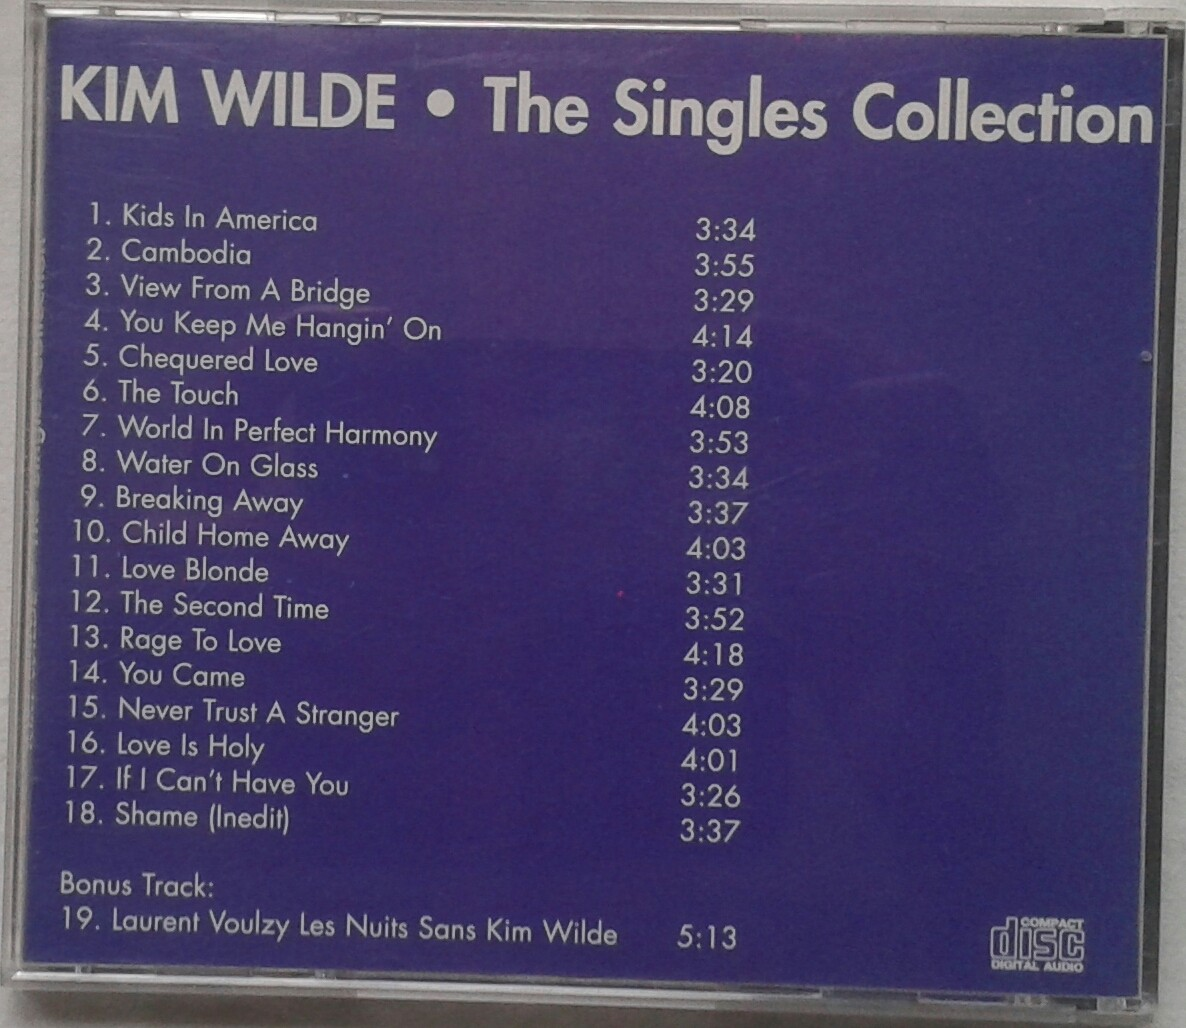 kim singles Listen to music from kim wilde like kids in america, cambodia & more find the latest tracks, albums, and images from kim wilde.